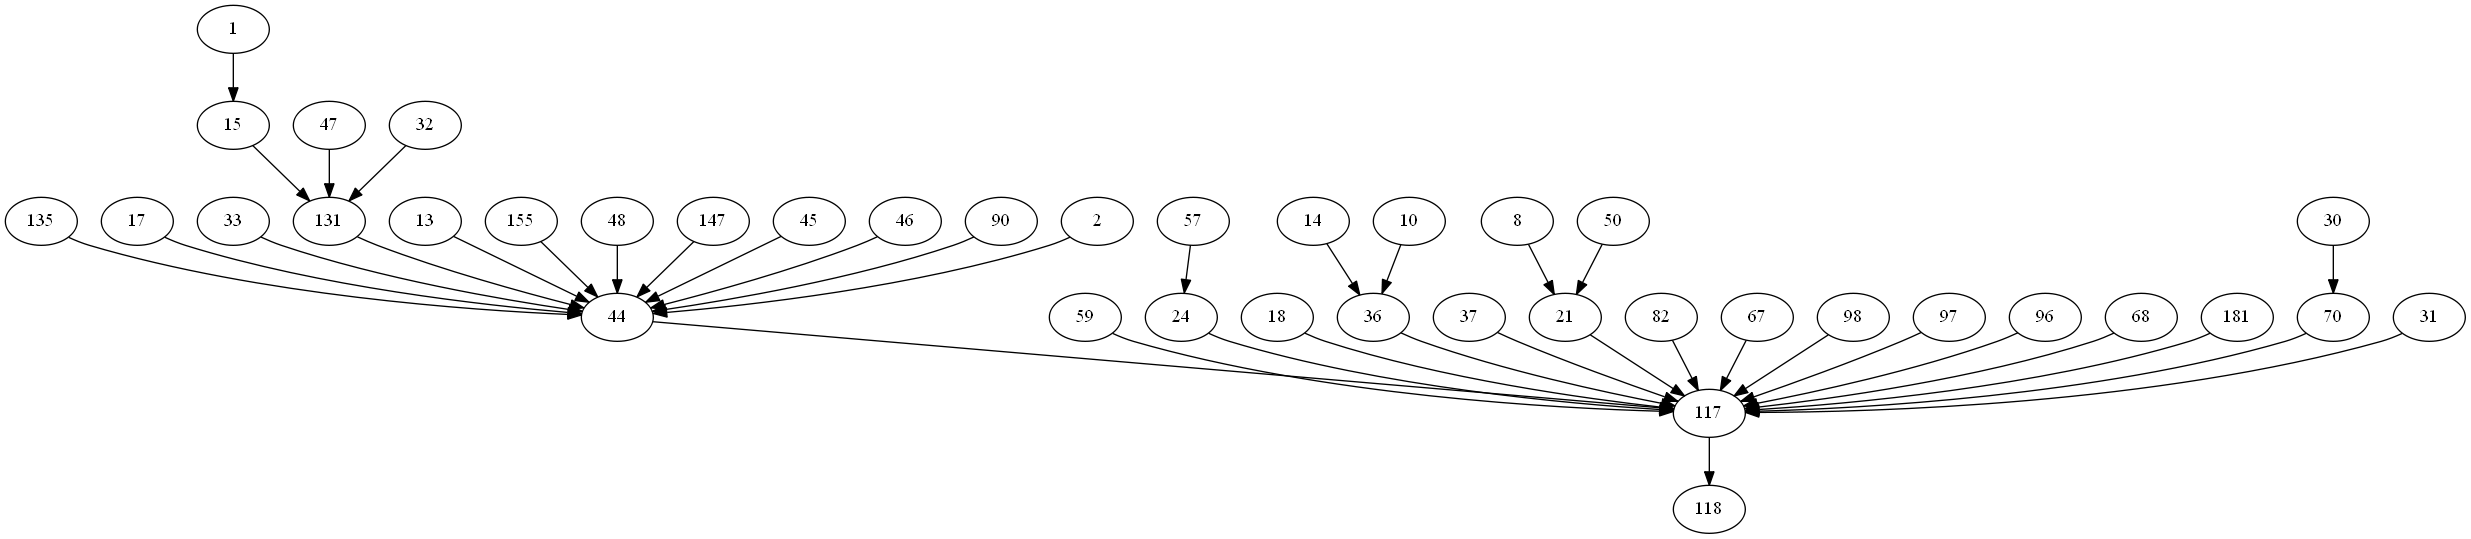 sequential_patterns_spmf_graphviz